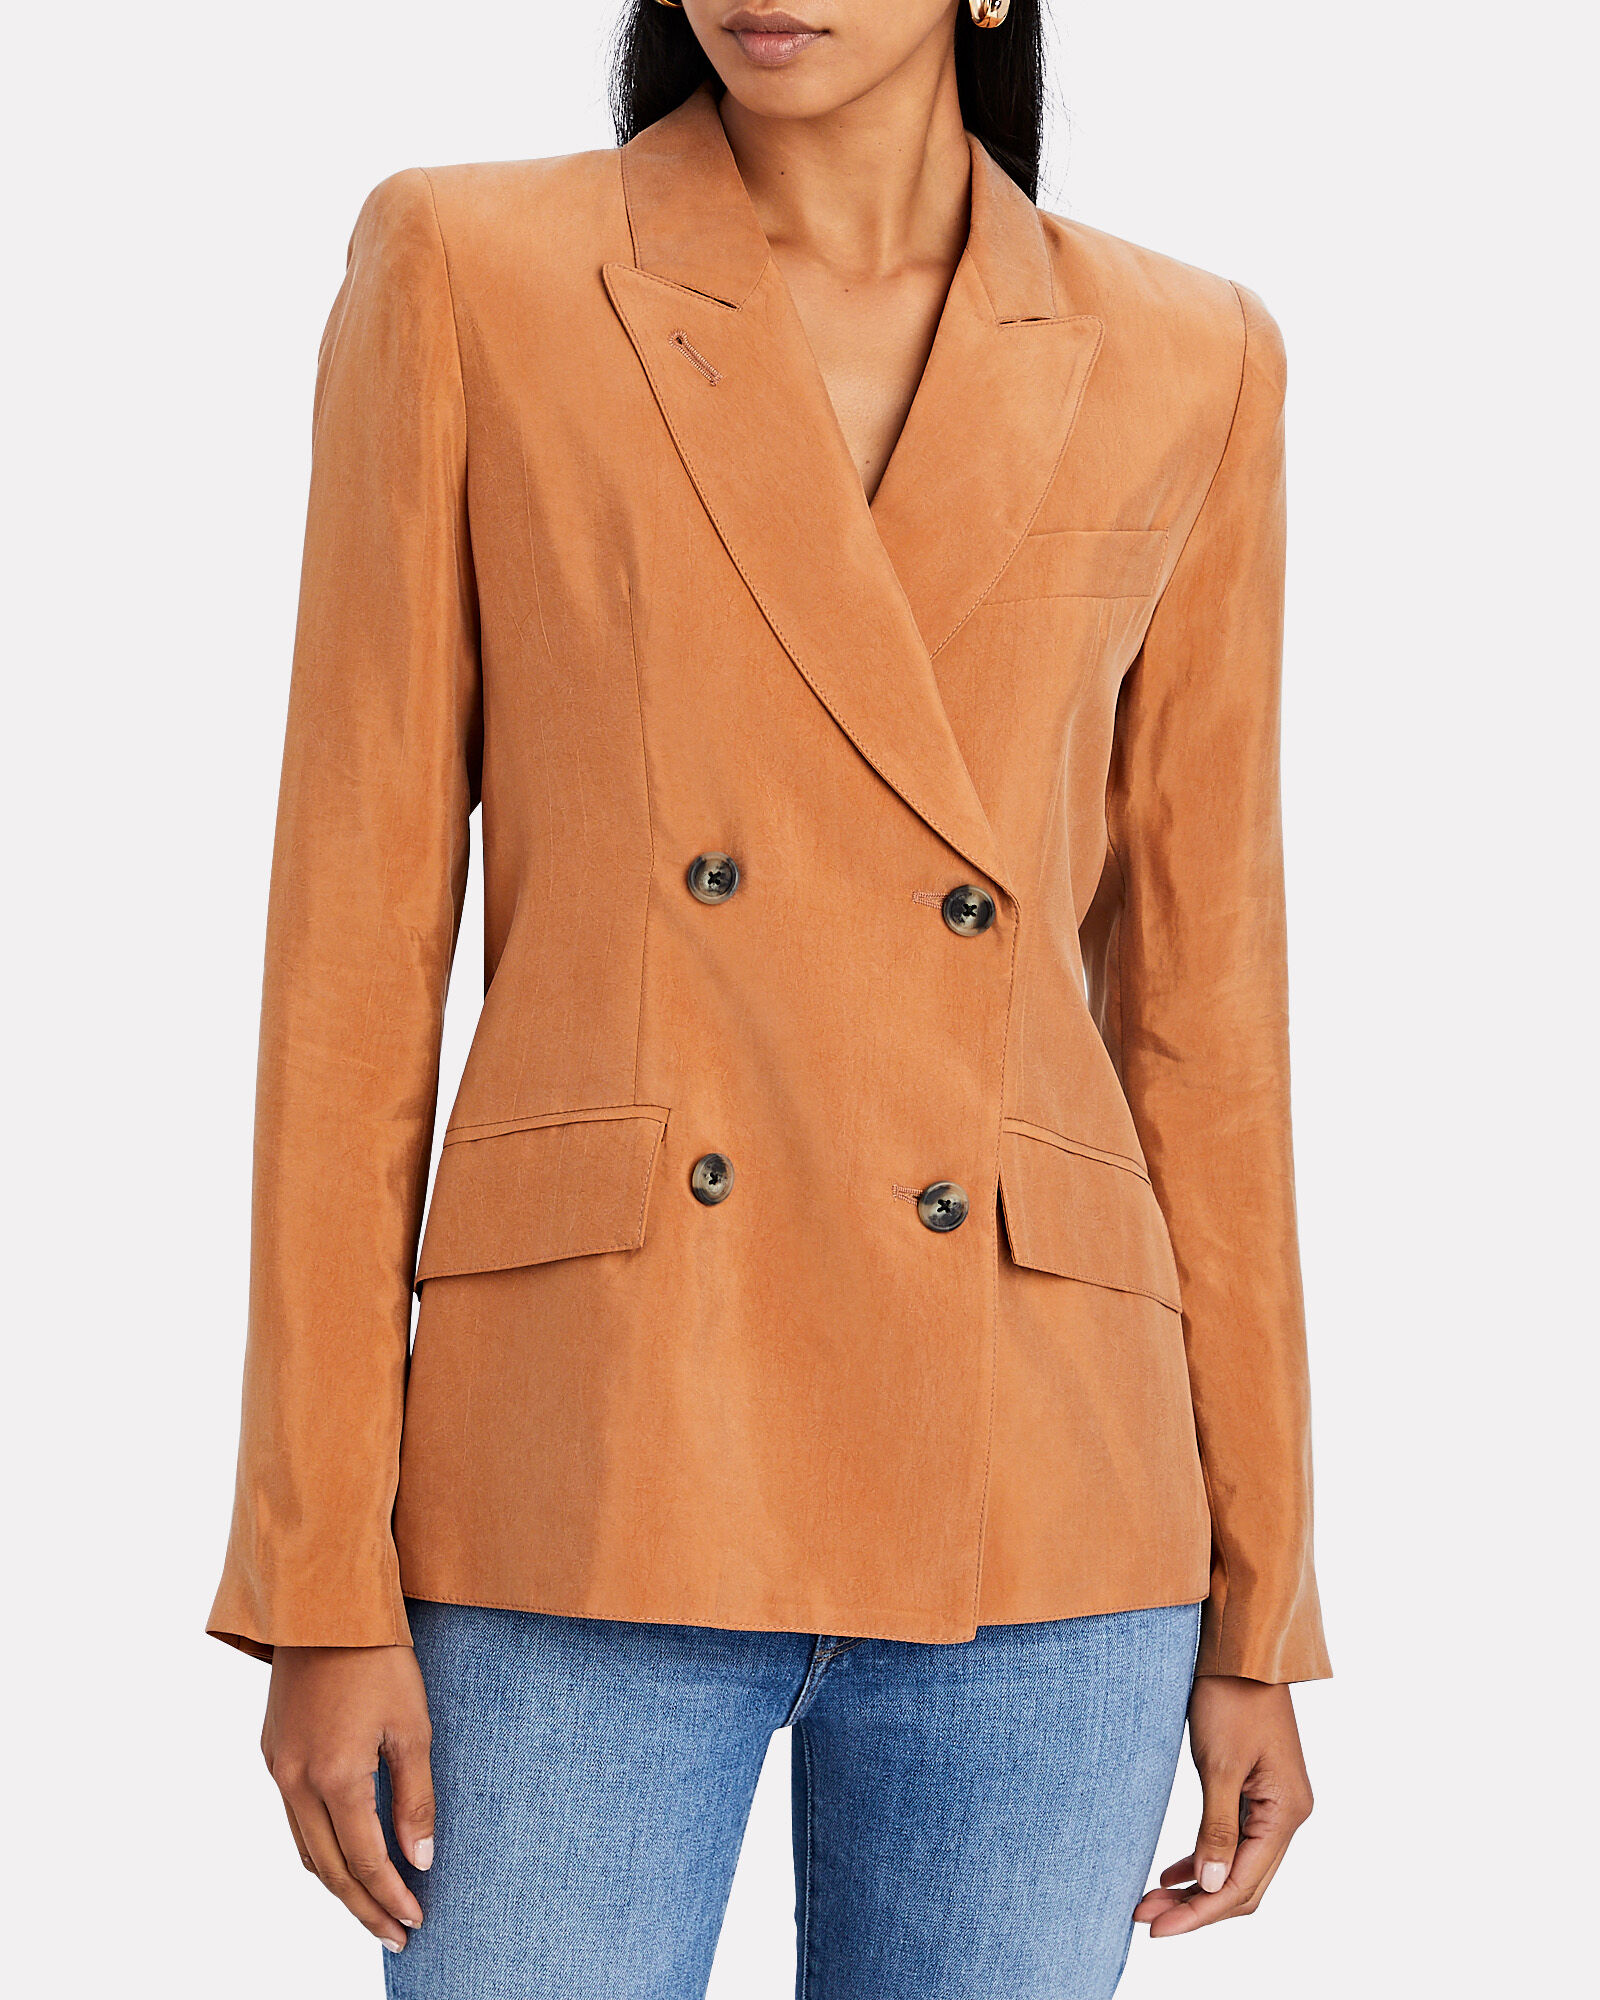 Double-Breasted Tuck-In Blazer, BEIGE, hi-res